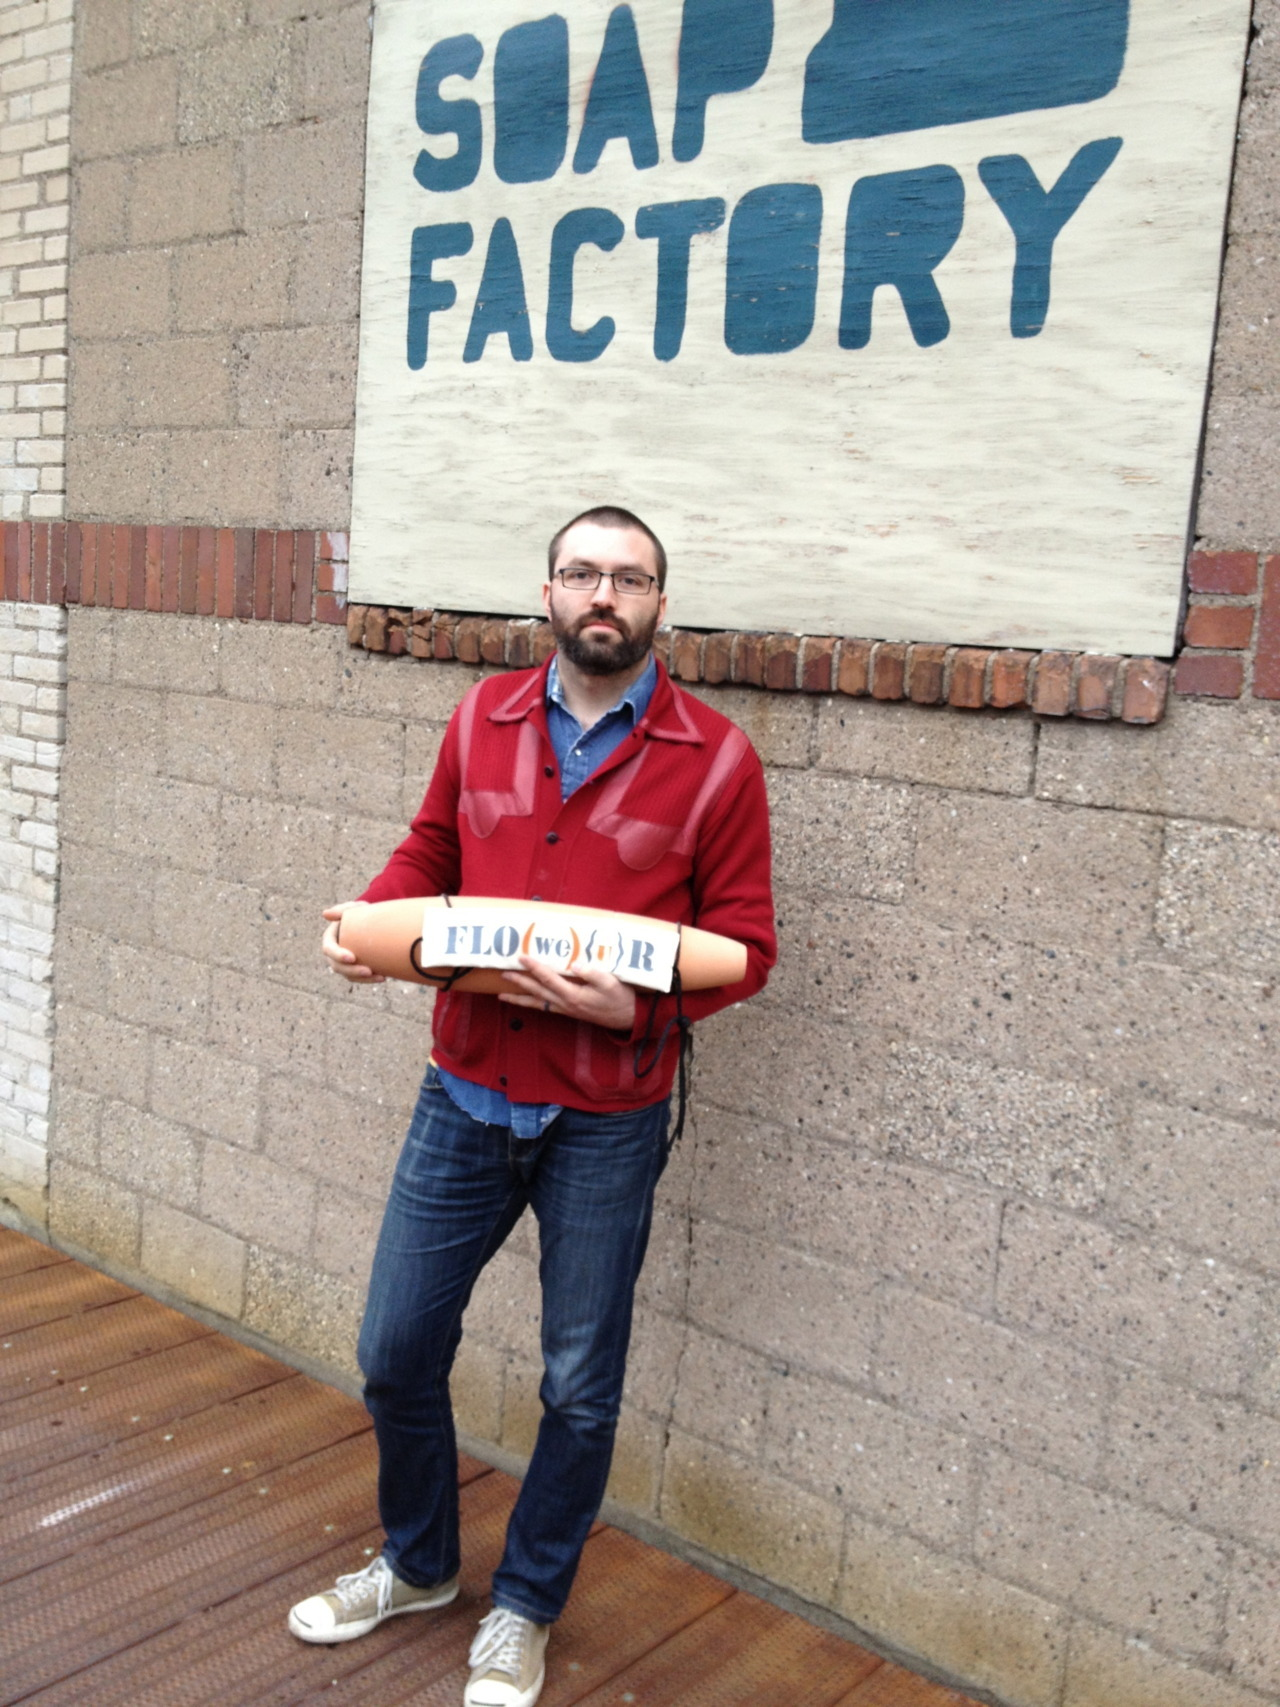 On Saturday night Colin & I went to The Soap Factory to experience Joe Madrigal and Amber Ginsburg's FLO(WE){U}R project. Throughout the night the artists were busy making clay bomb casings, re-imagined as seed shakers. Visitors were invited to fill them with seed mix and to take them outside for a walk around the neighborhood, scattering seeds. A century ago, similar terra cotta casings were manufactured, filled with baking flour, and used as test bombs. In this project, the artists used those original blueprints to create something entirely different and generative.  There are a couple of seed-scattering bike rides planned for the coming weeks, and an event as part of the Northern Spark festival on June 9th. All of that information can be found on The Soap Factory's website.